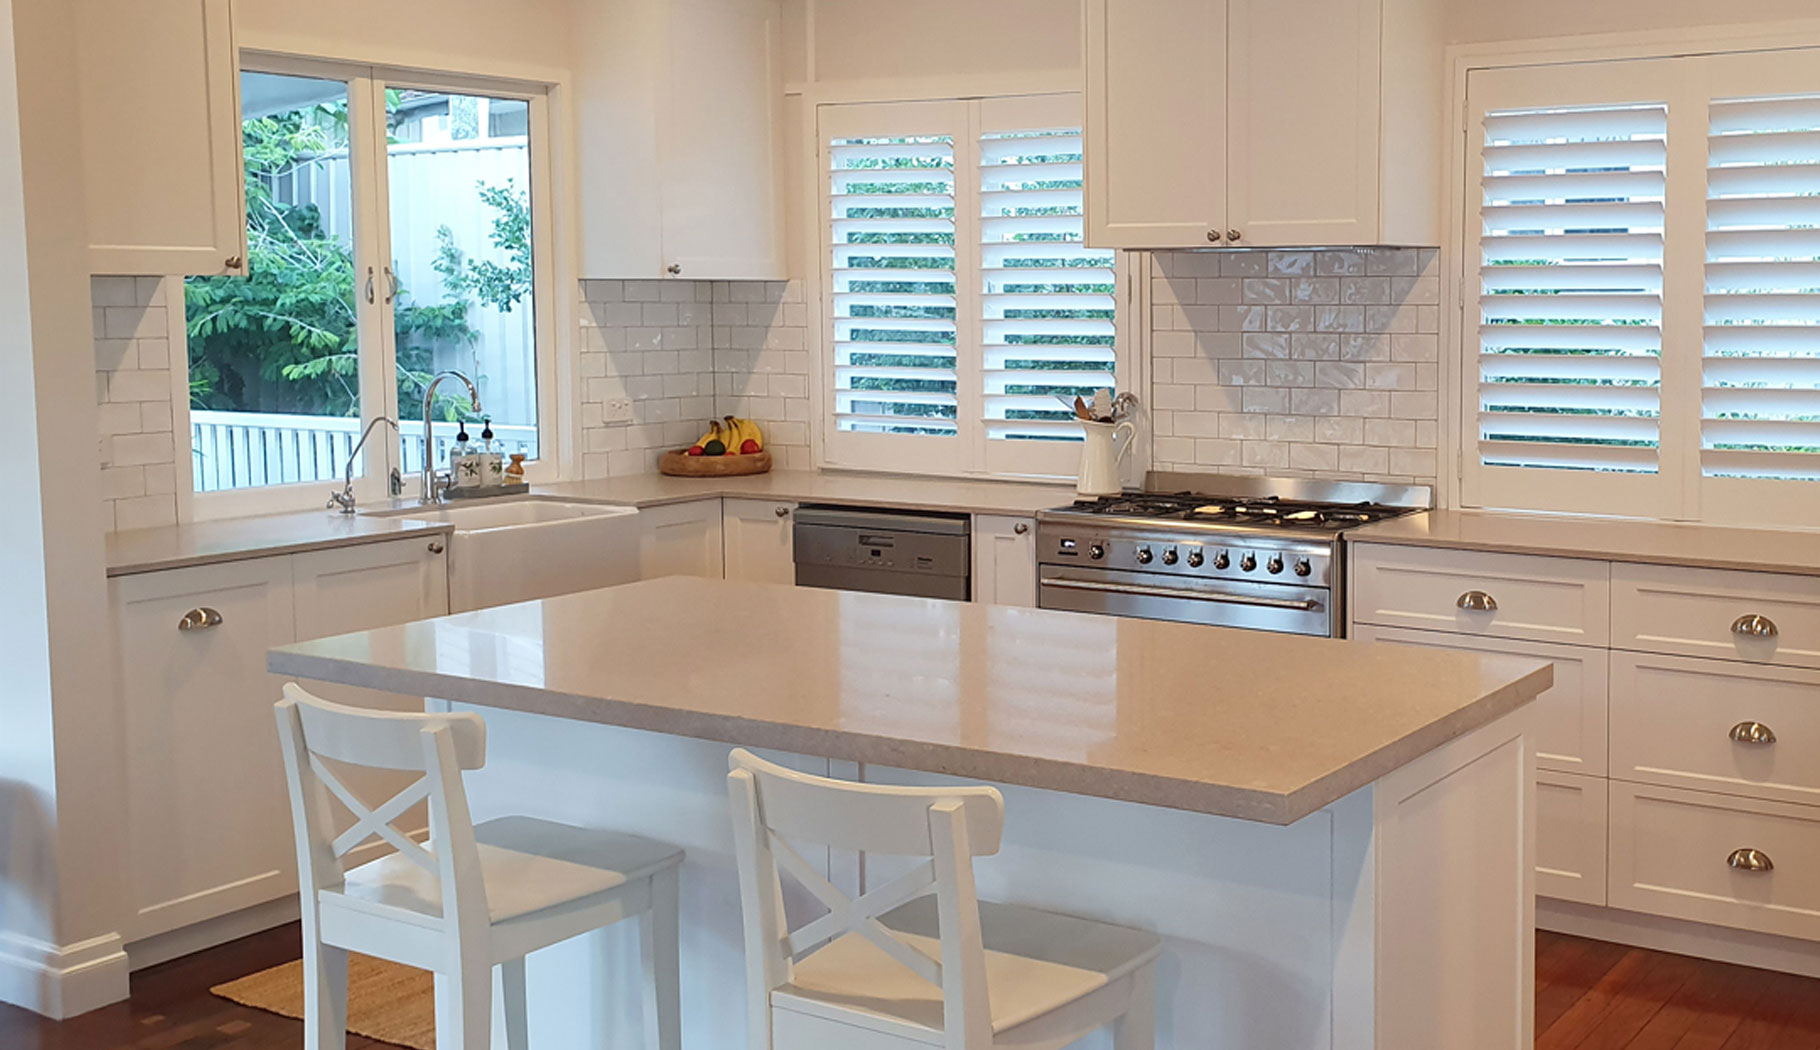 Kitchen in white built by Gecko Kitchens, licenced builder in Brisbane creating kitchens, bathrooms and laundries